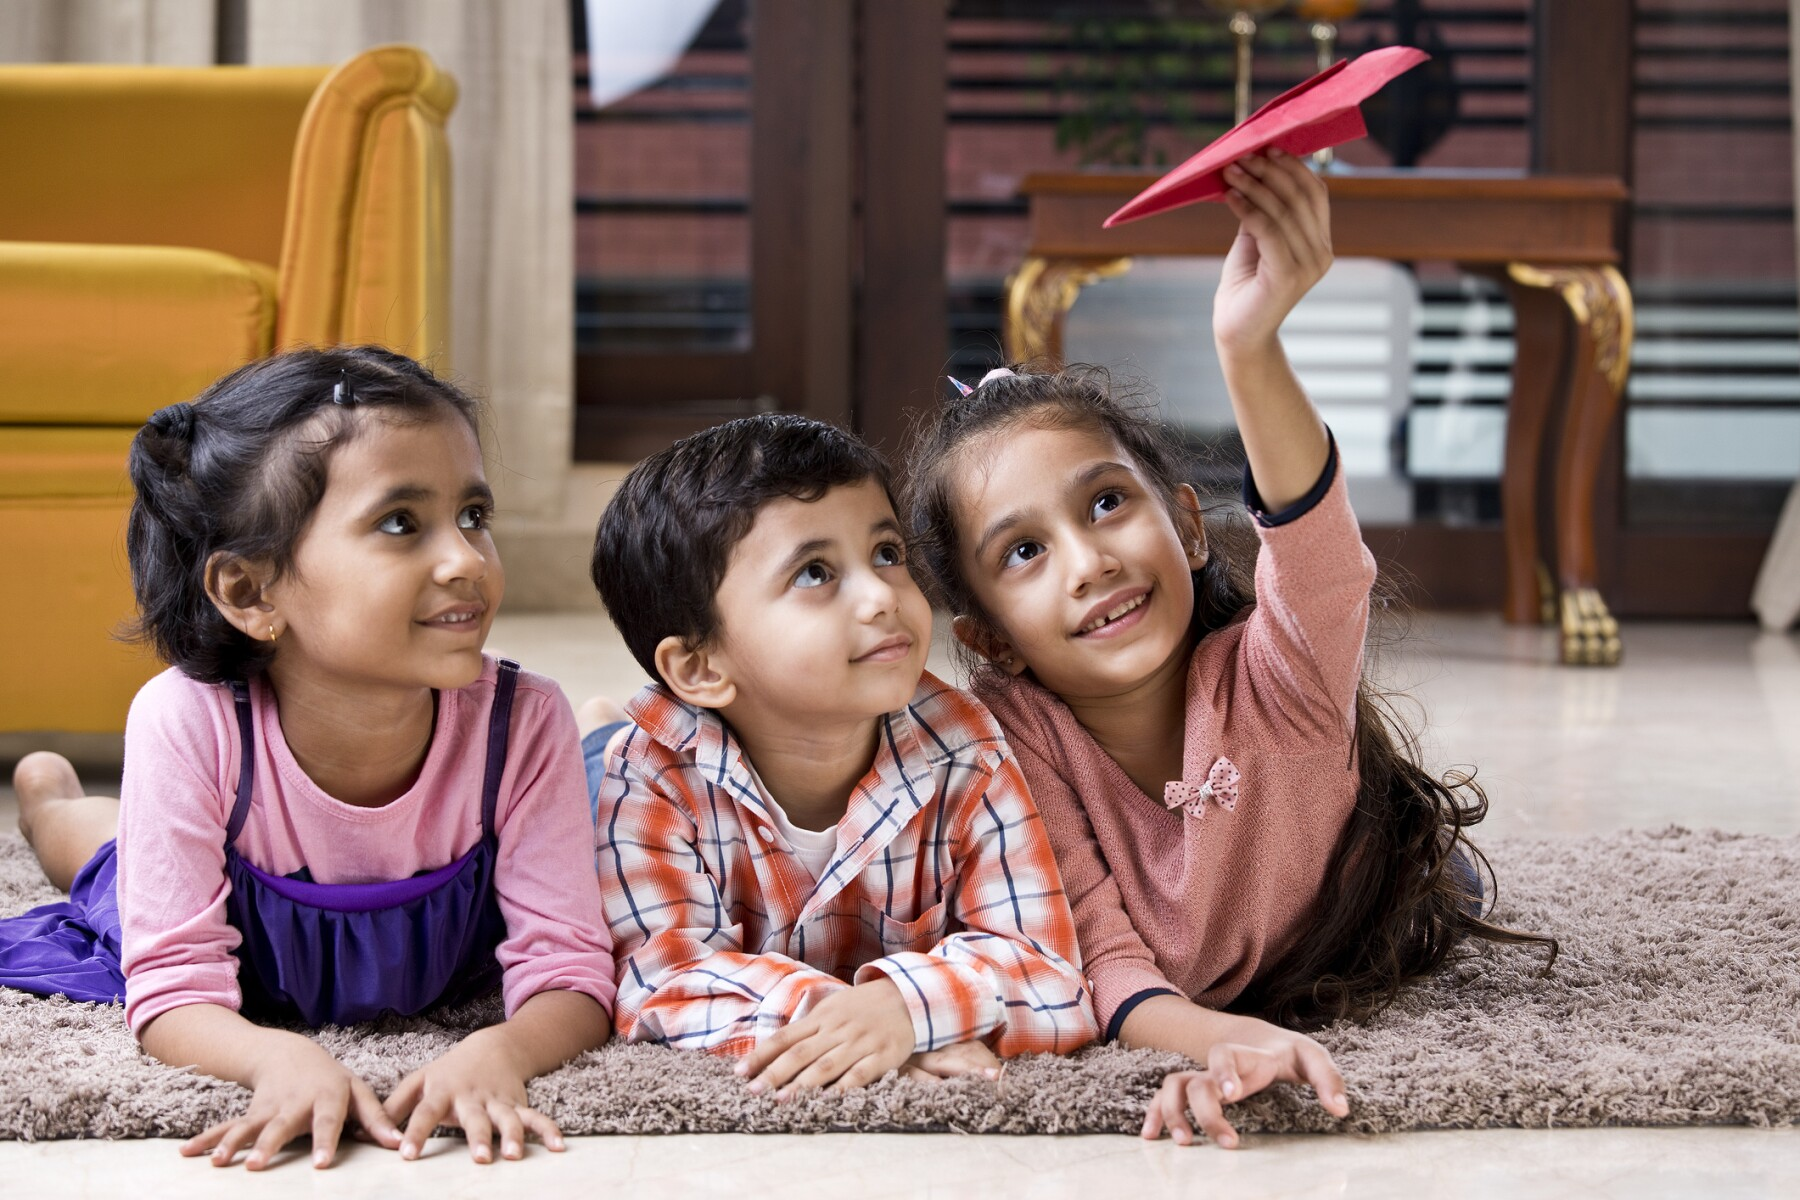 Children playing with paper airplane at home